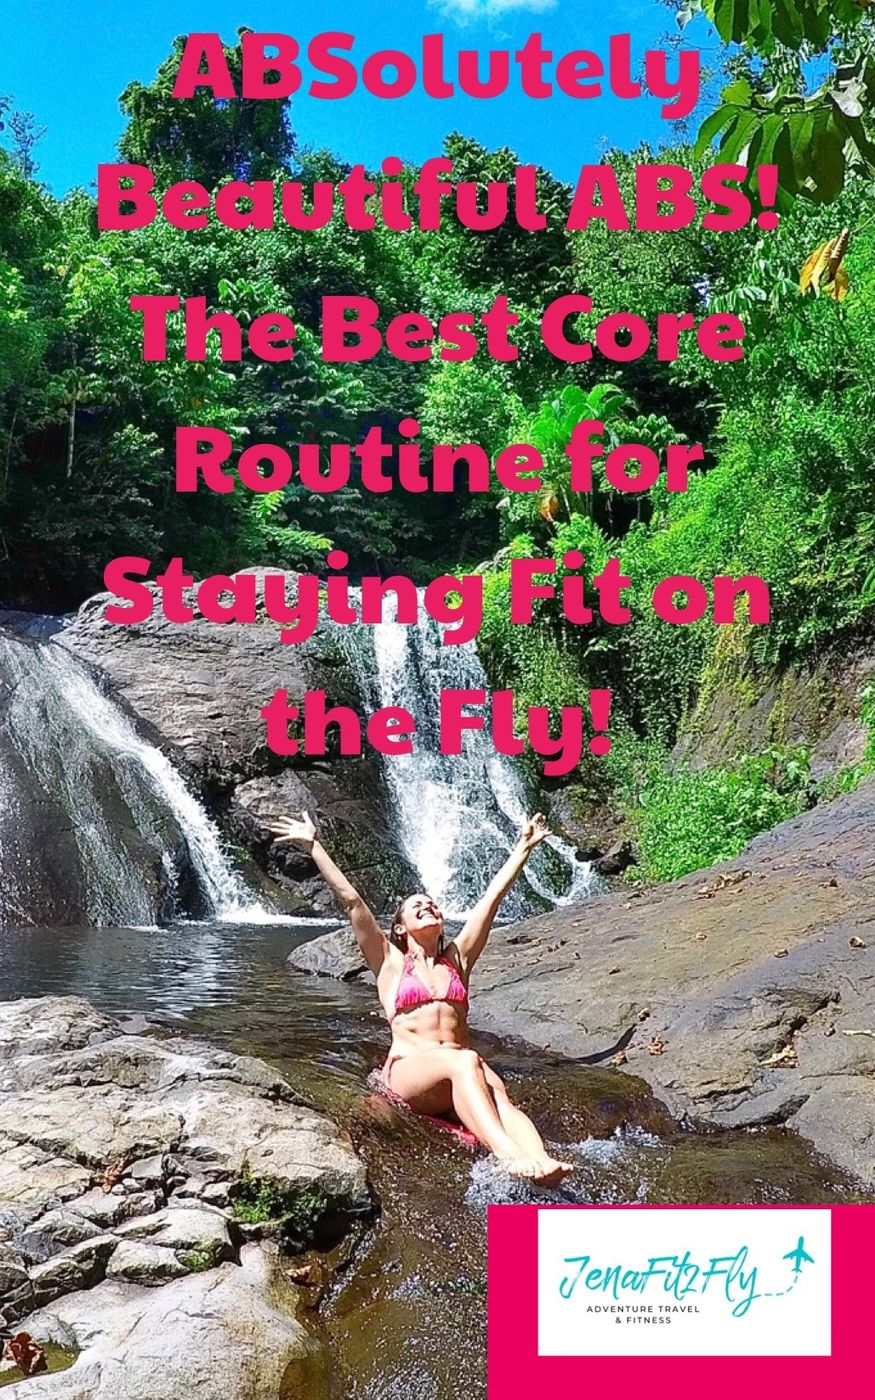 The Best Core Routine for Staying fit on the Fly!